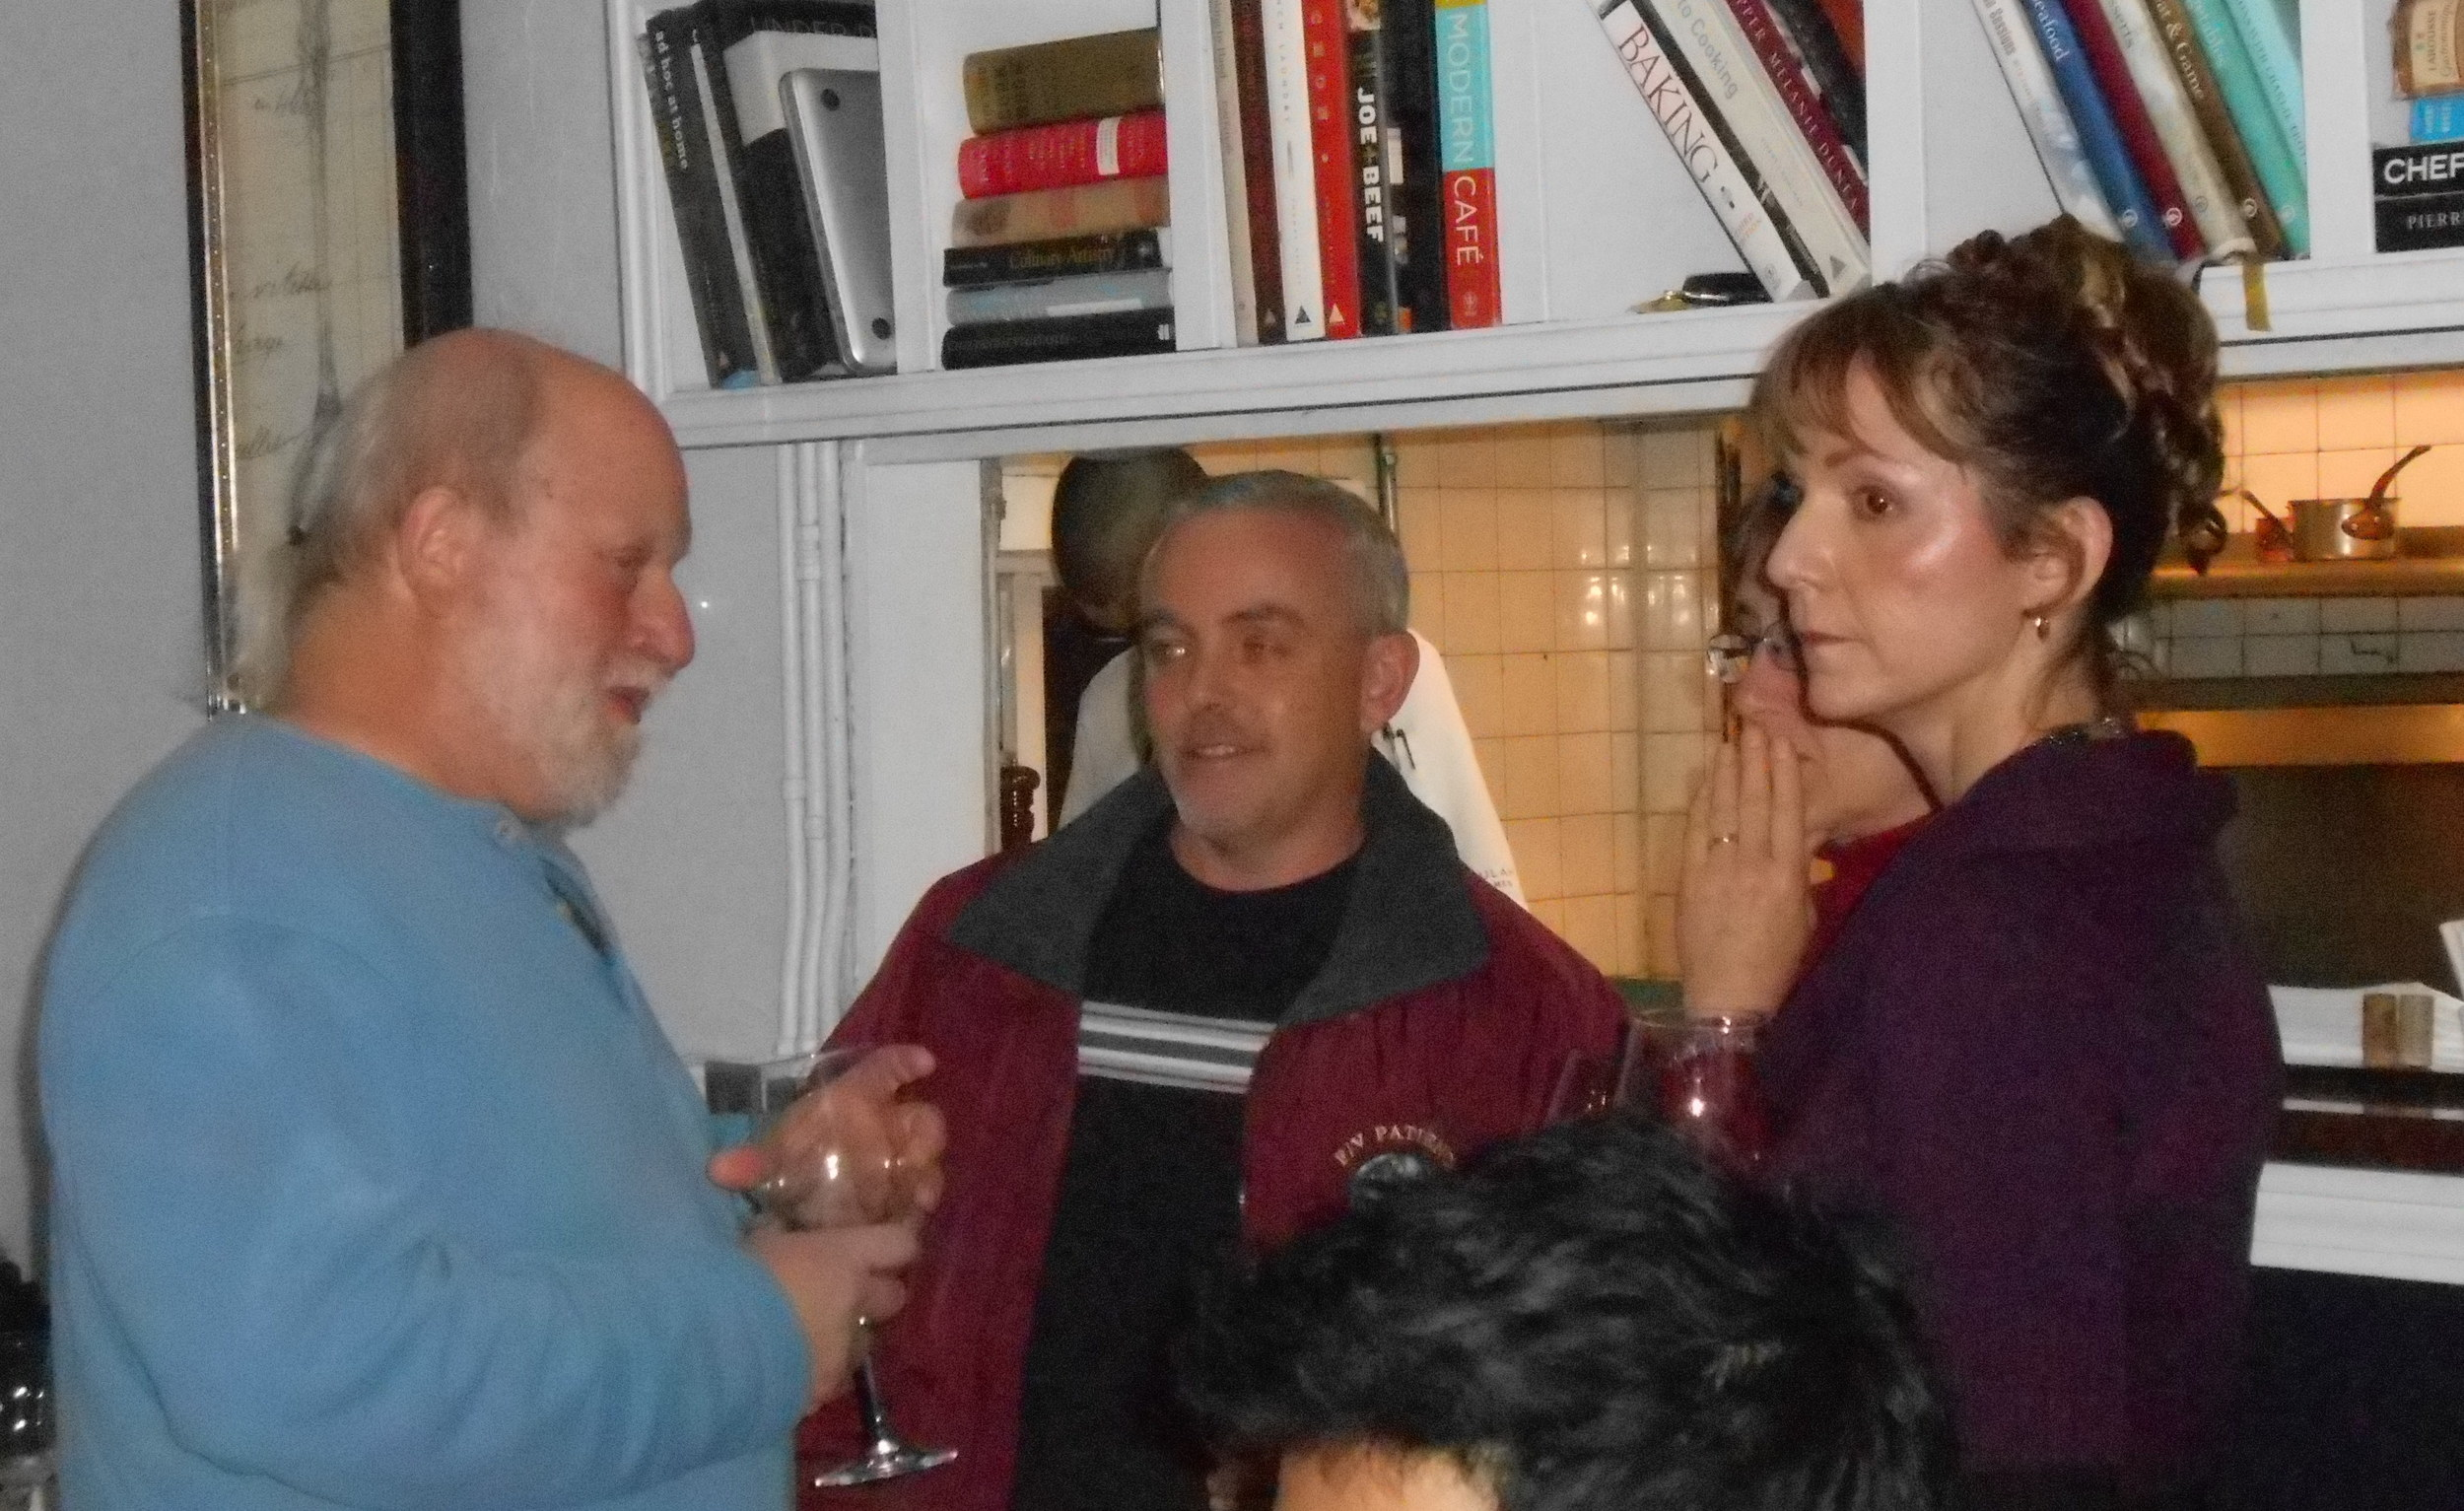 Scientist Peter Auster and fisherman Tommy Quintin and wife Nancy get to know each other